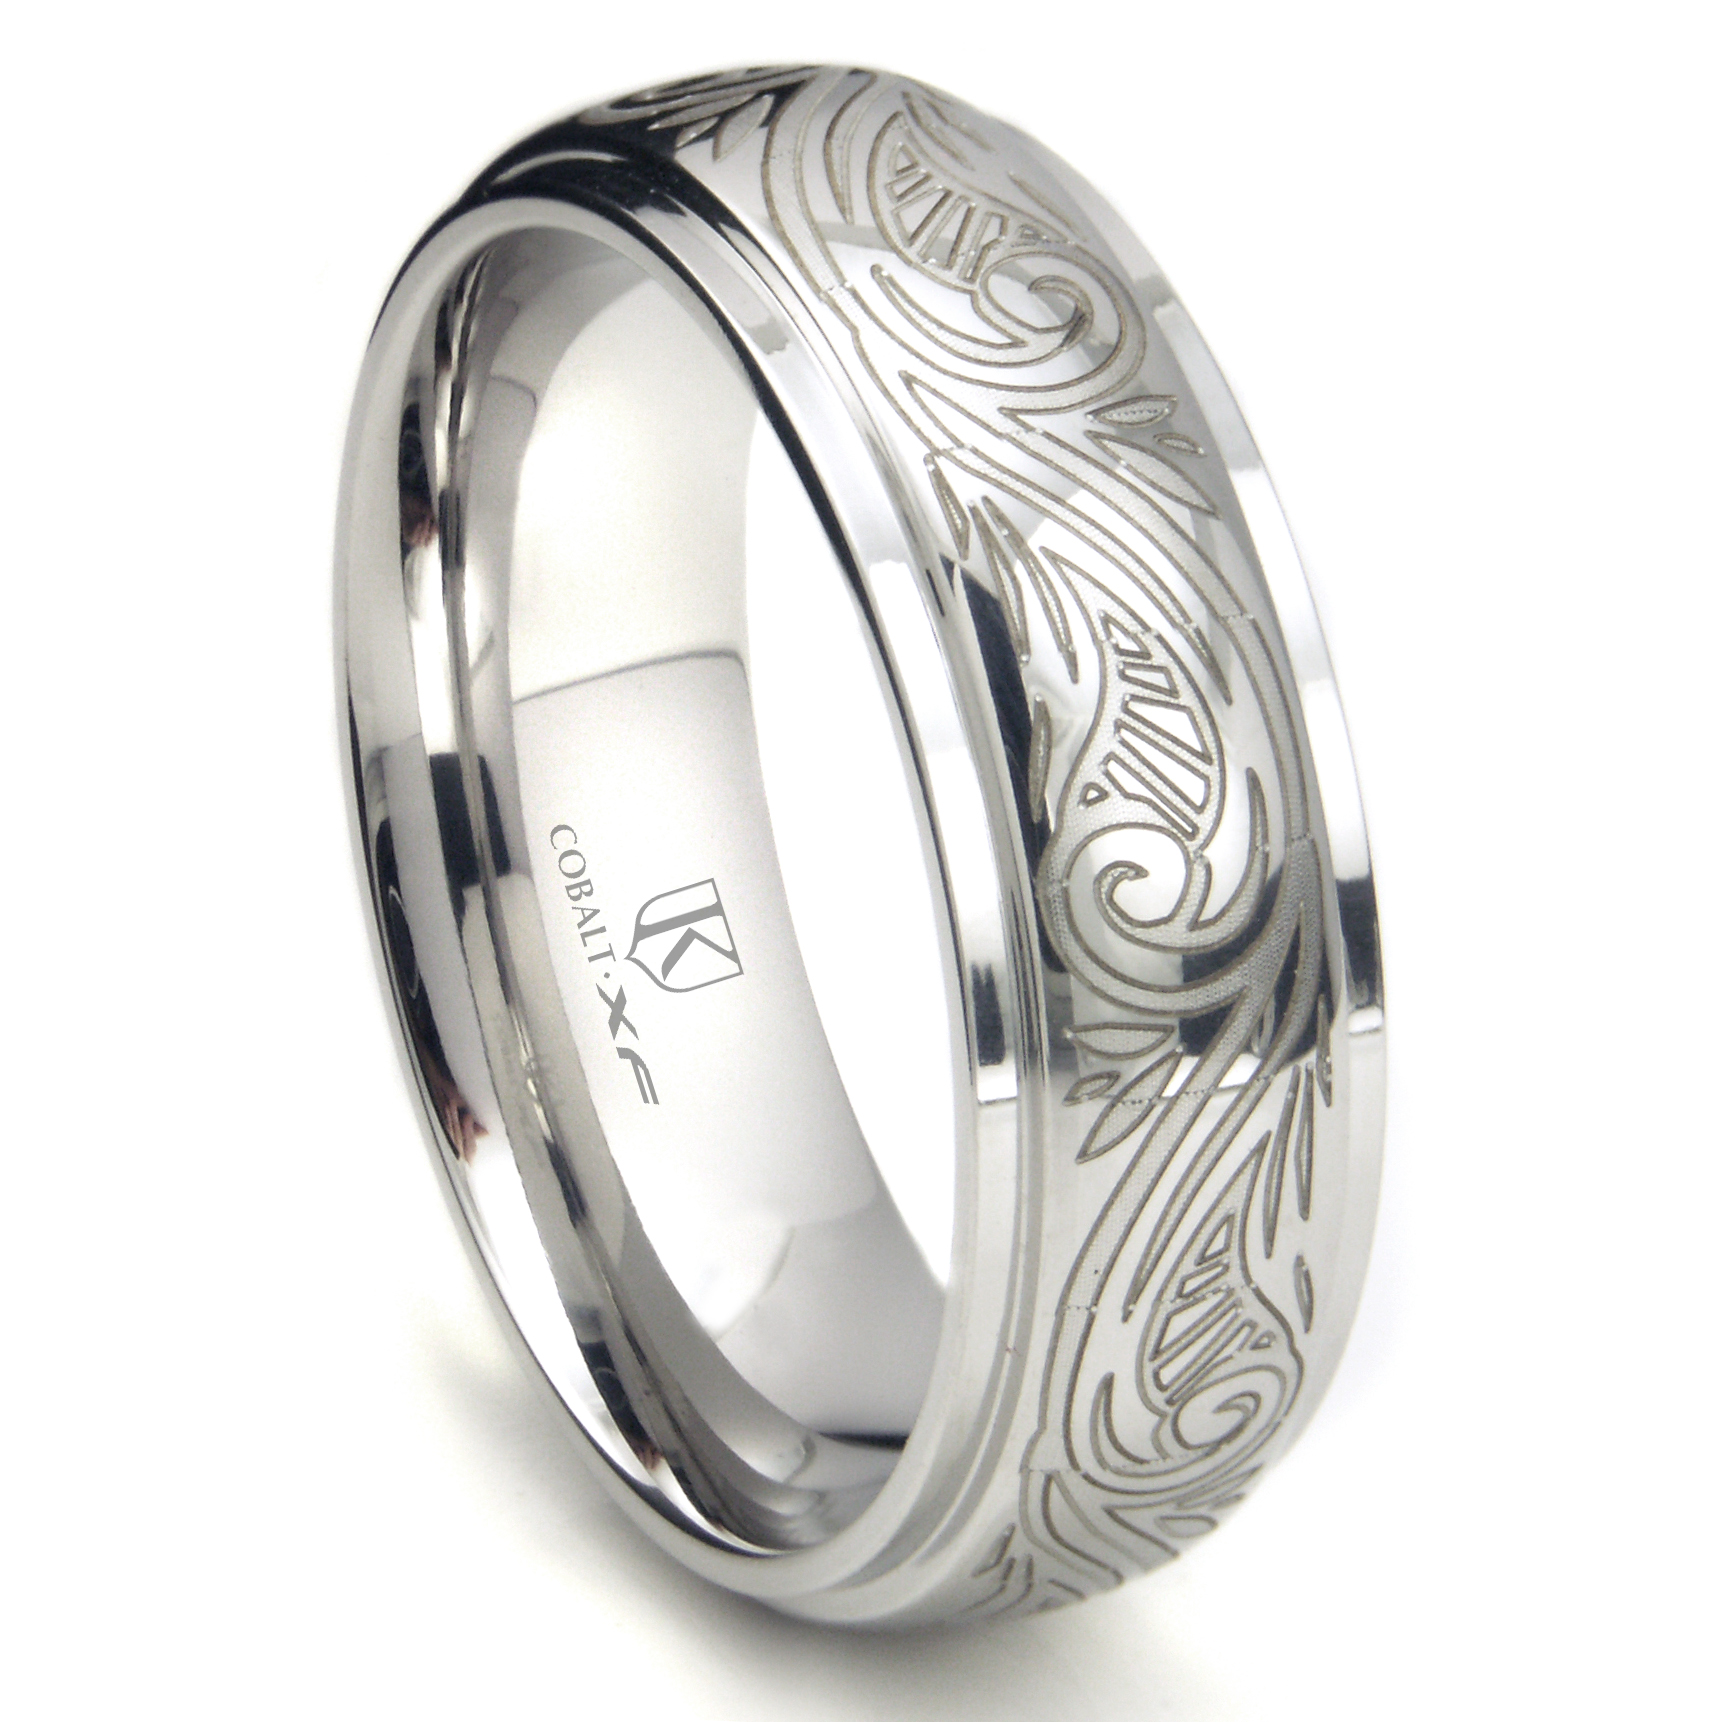 band beers jewellery rings platinum be wedding engraved personalized de bands inspired forever